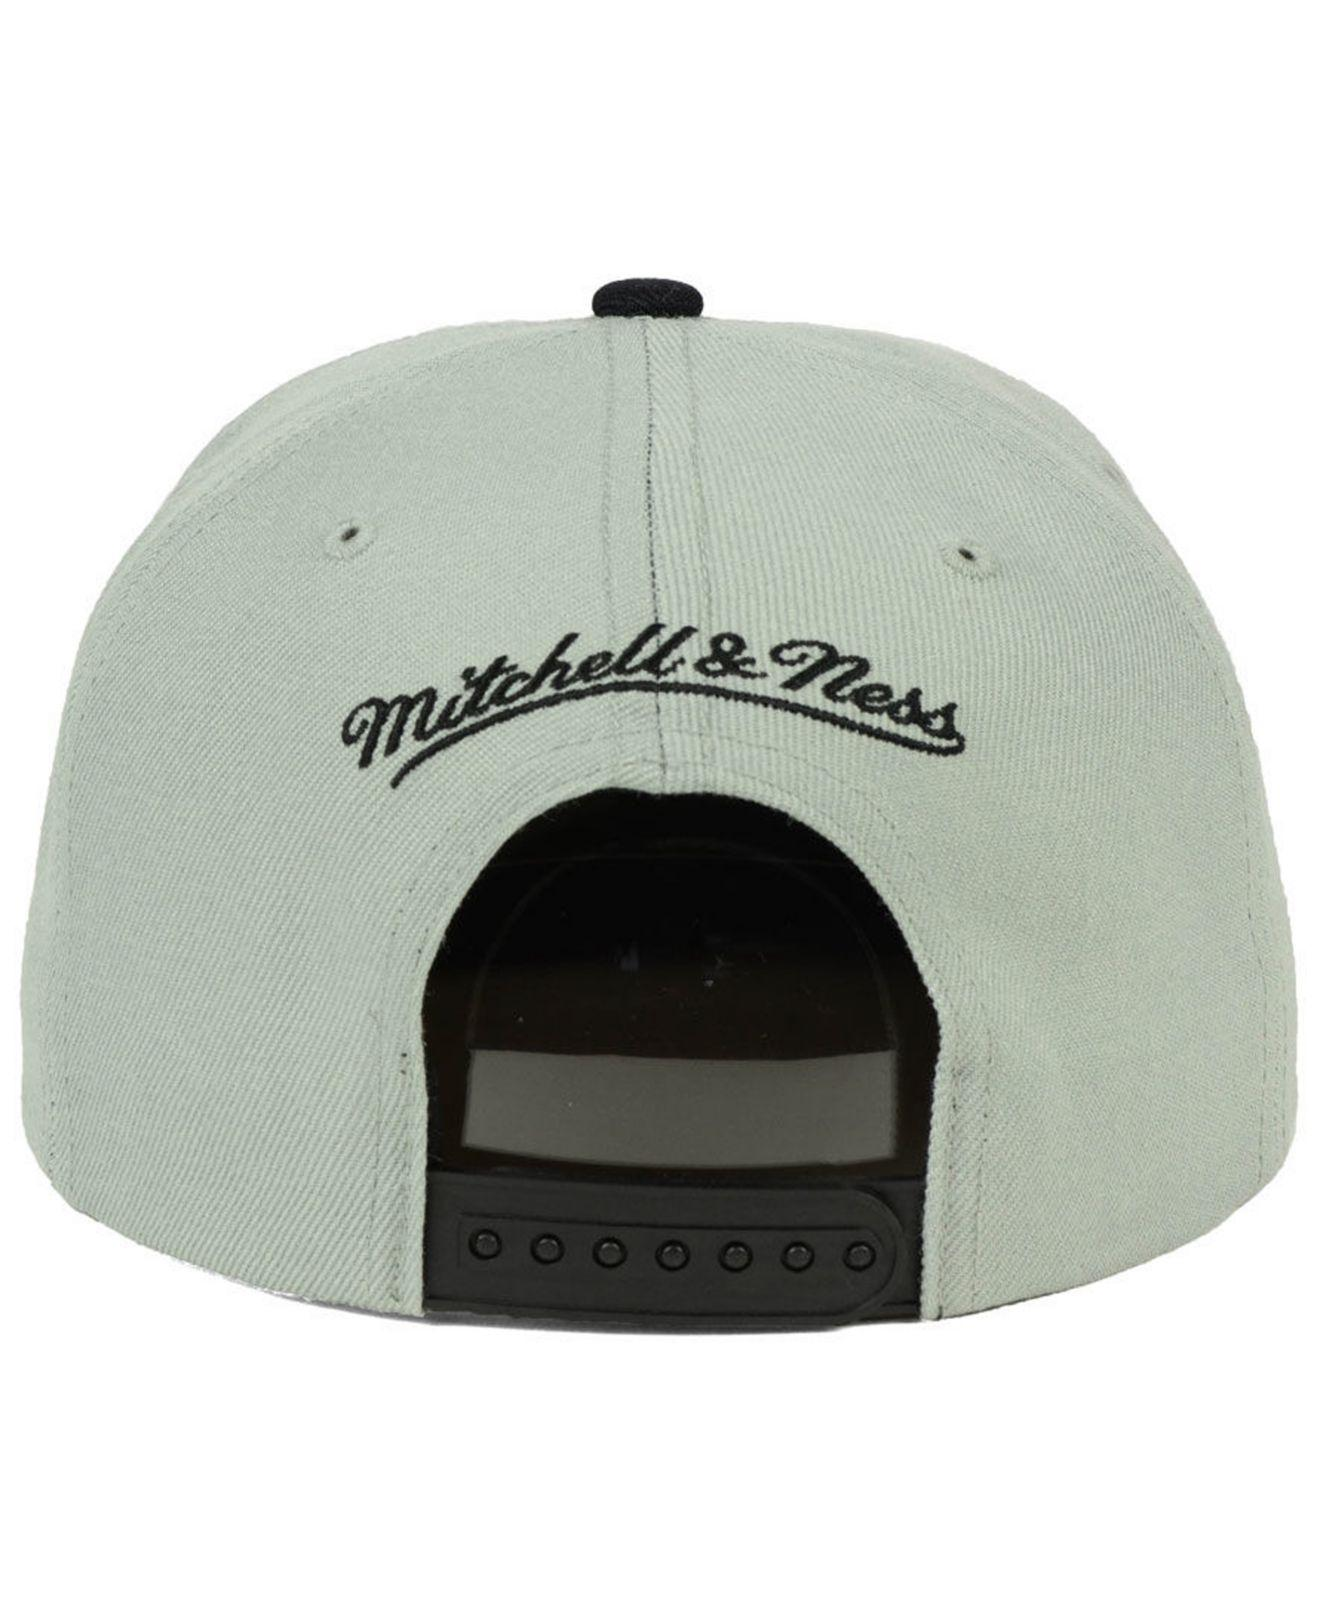 new product 3541c 1b619 ... switzerland mitchell ness multicolor san antonio spurs cropped satin snapback  cap for men lyst. view